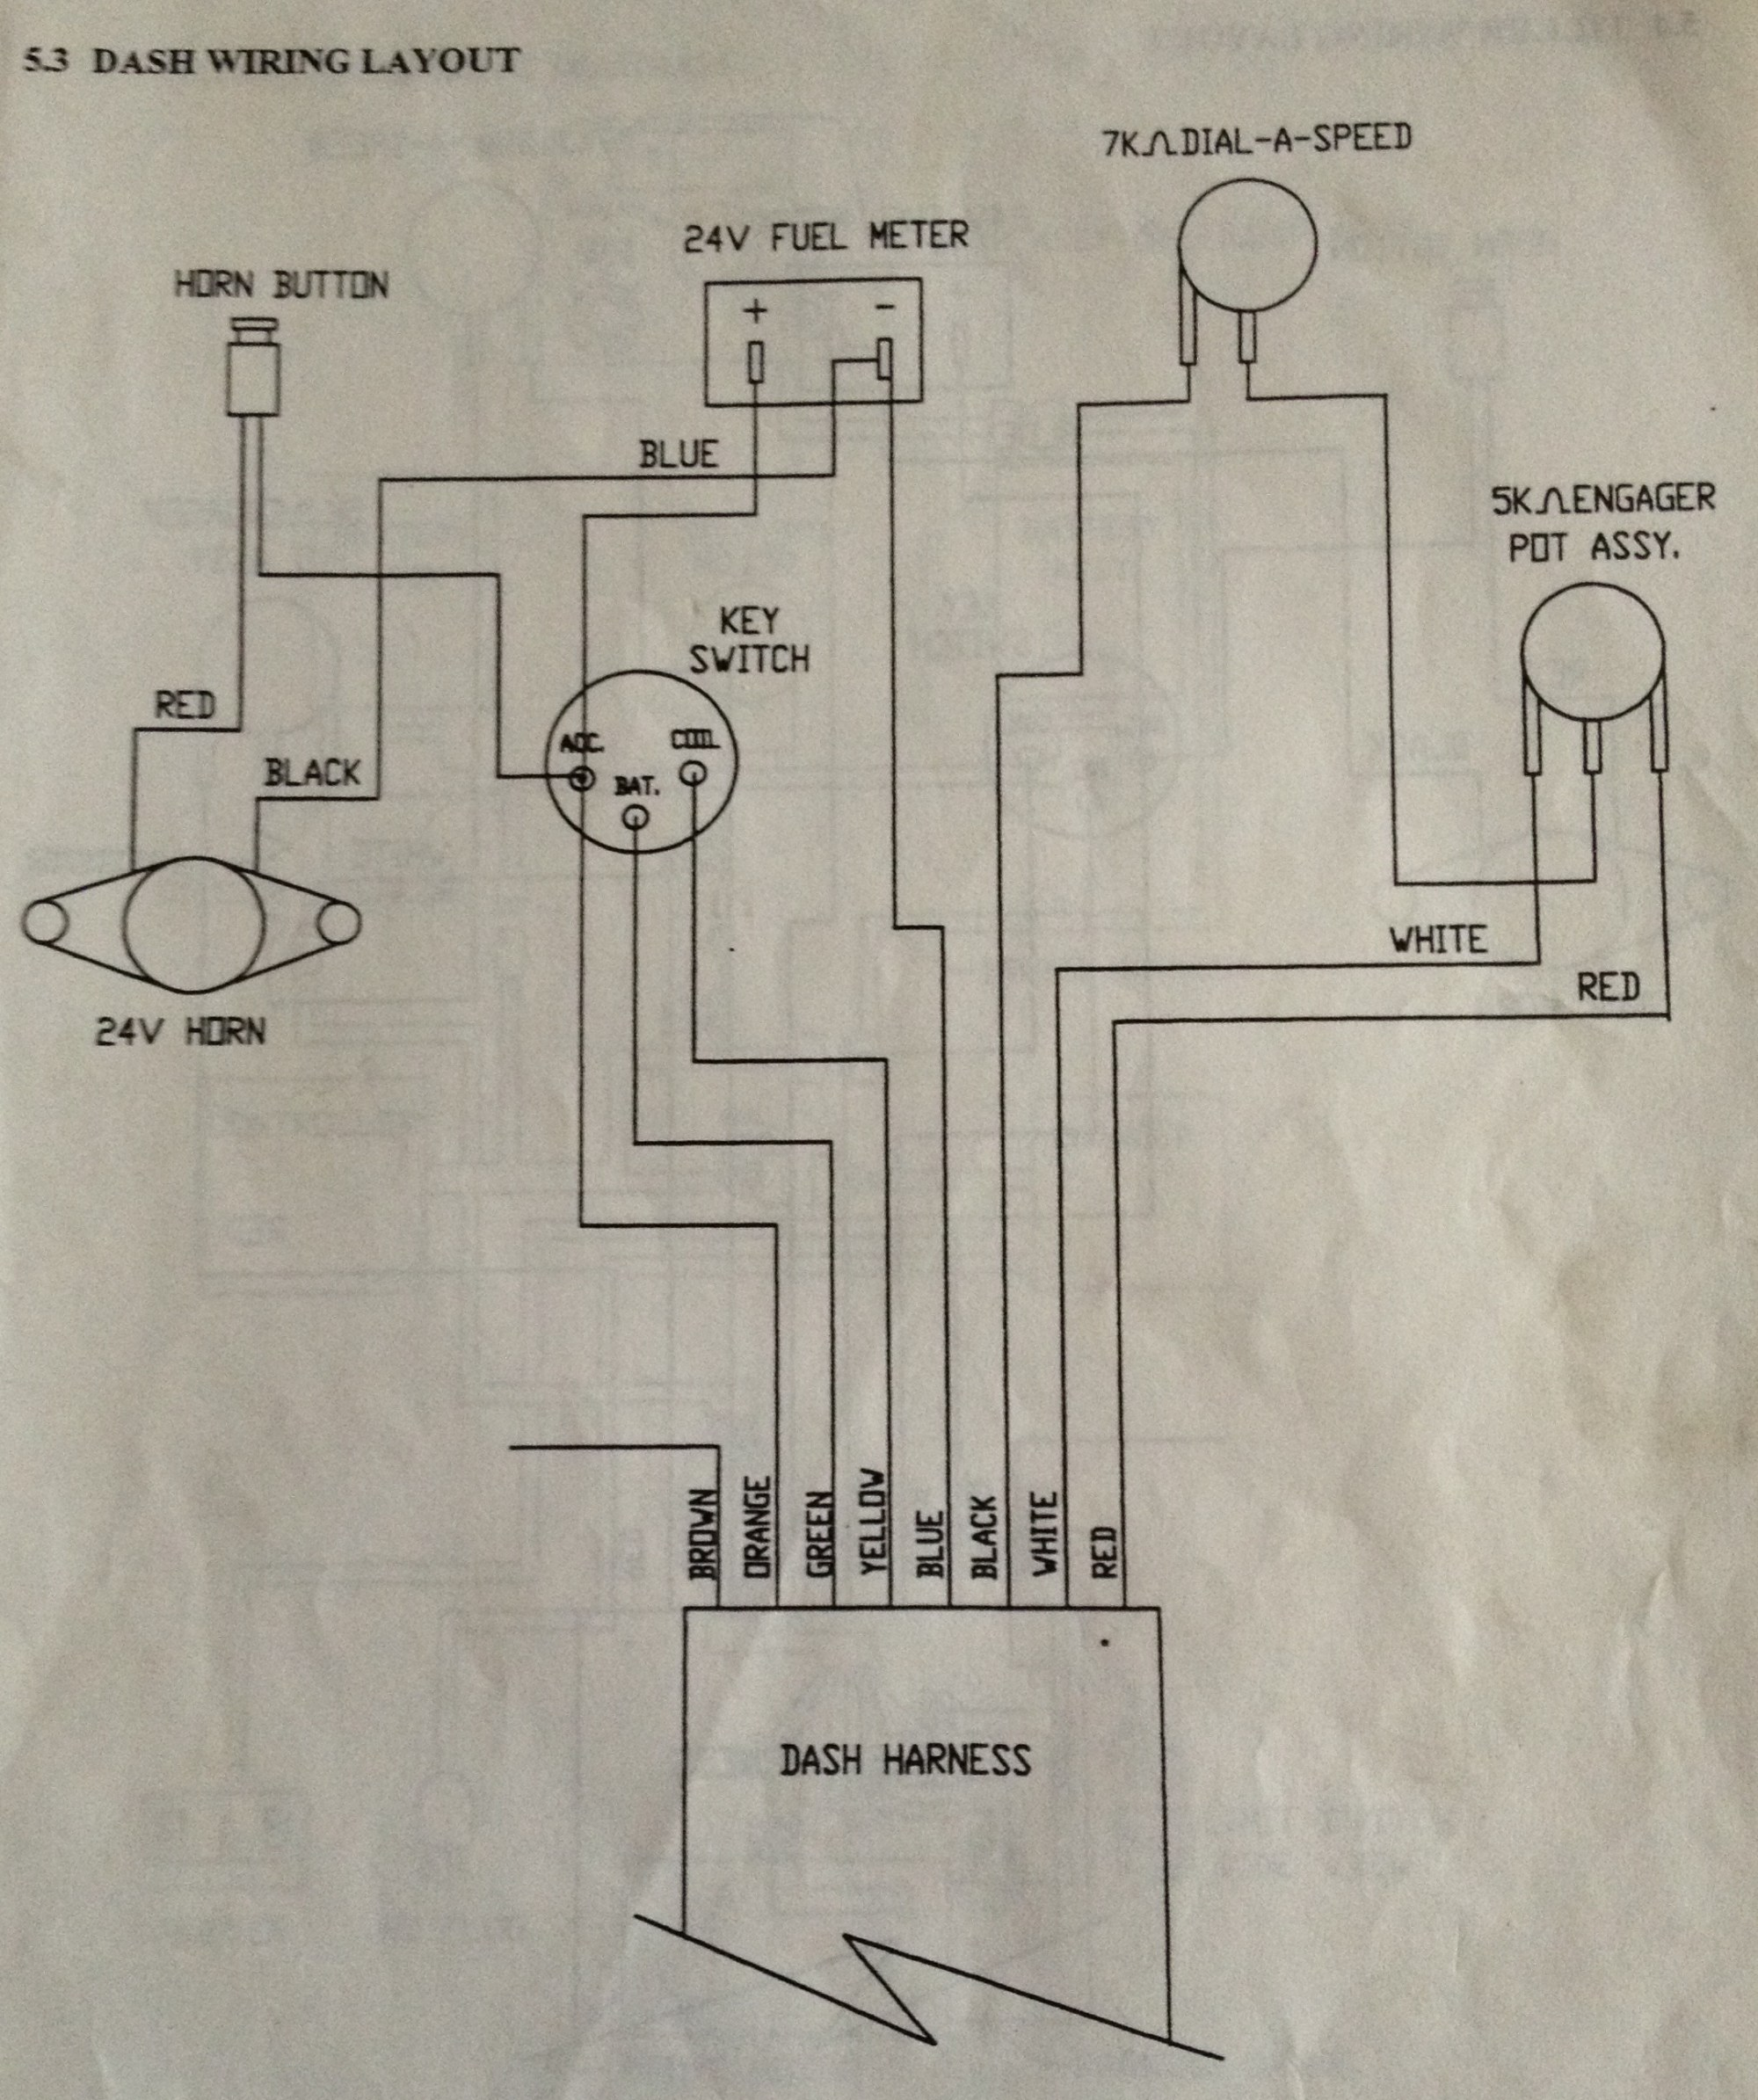 hight resolution of rascal battery wiring diagram wiring diagram week rascal 600 b electrical diagram wiring diagram centre rascal